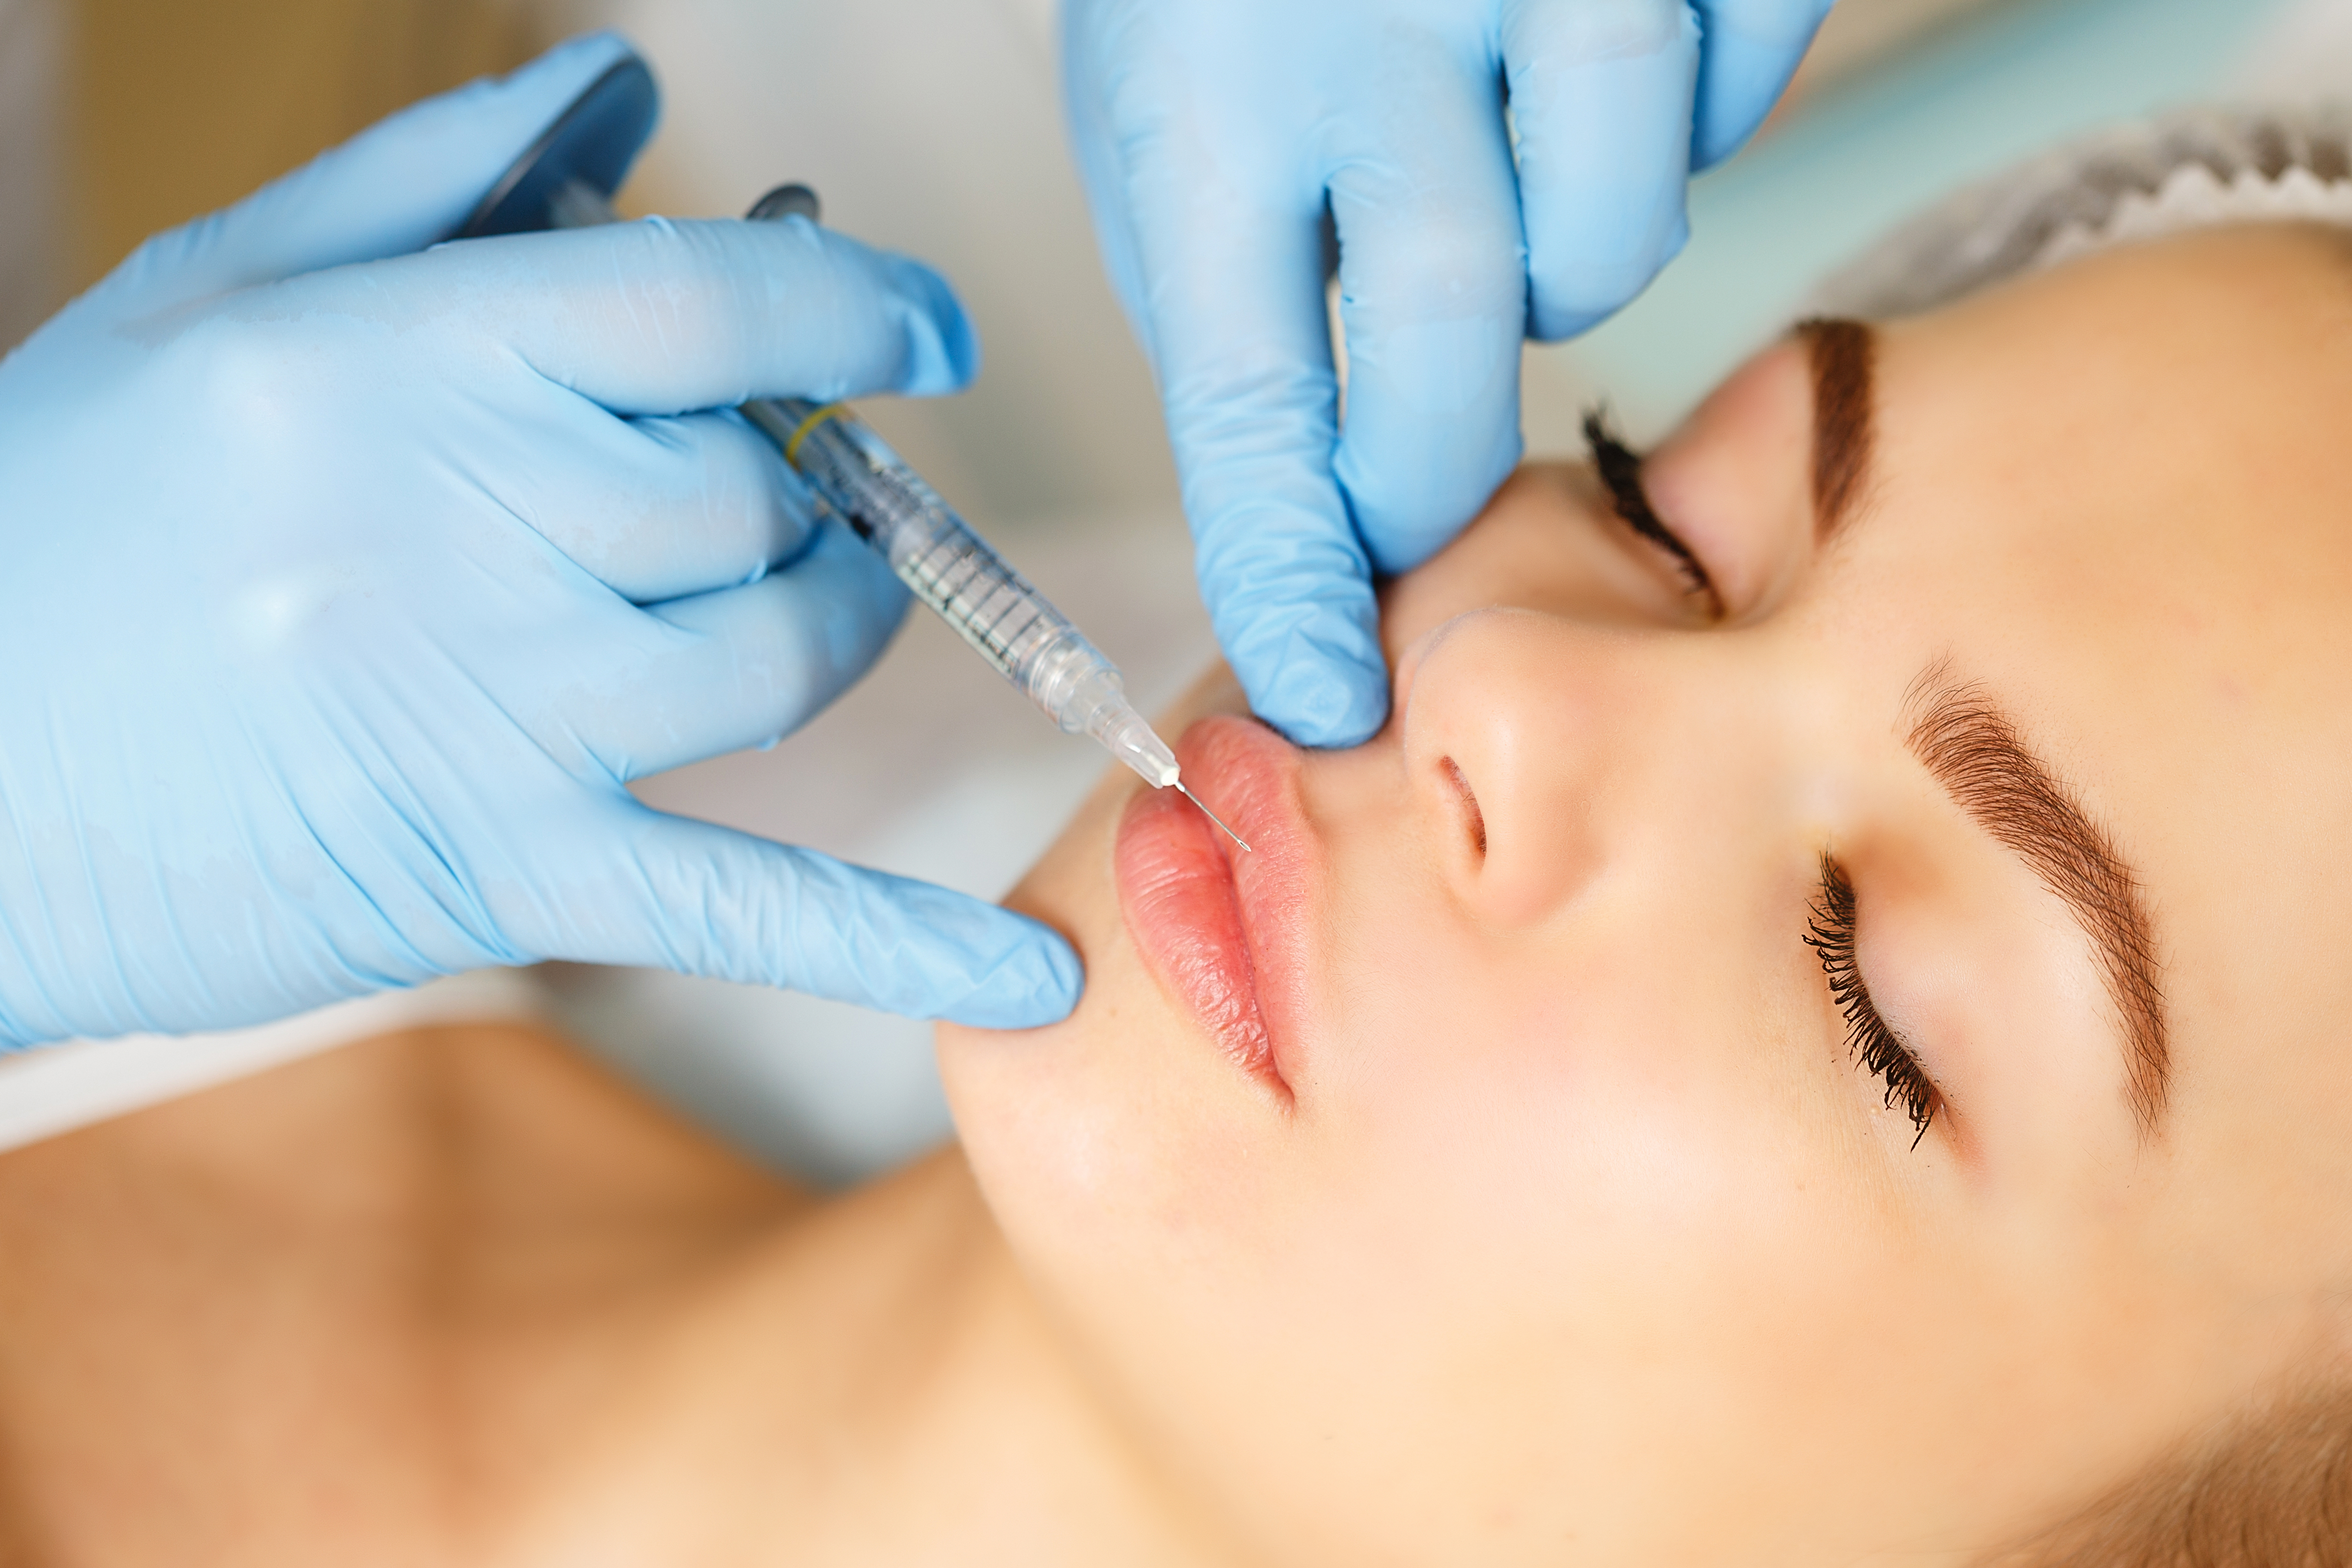 Aesthetics treatments at The Beauty Rooms